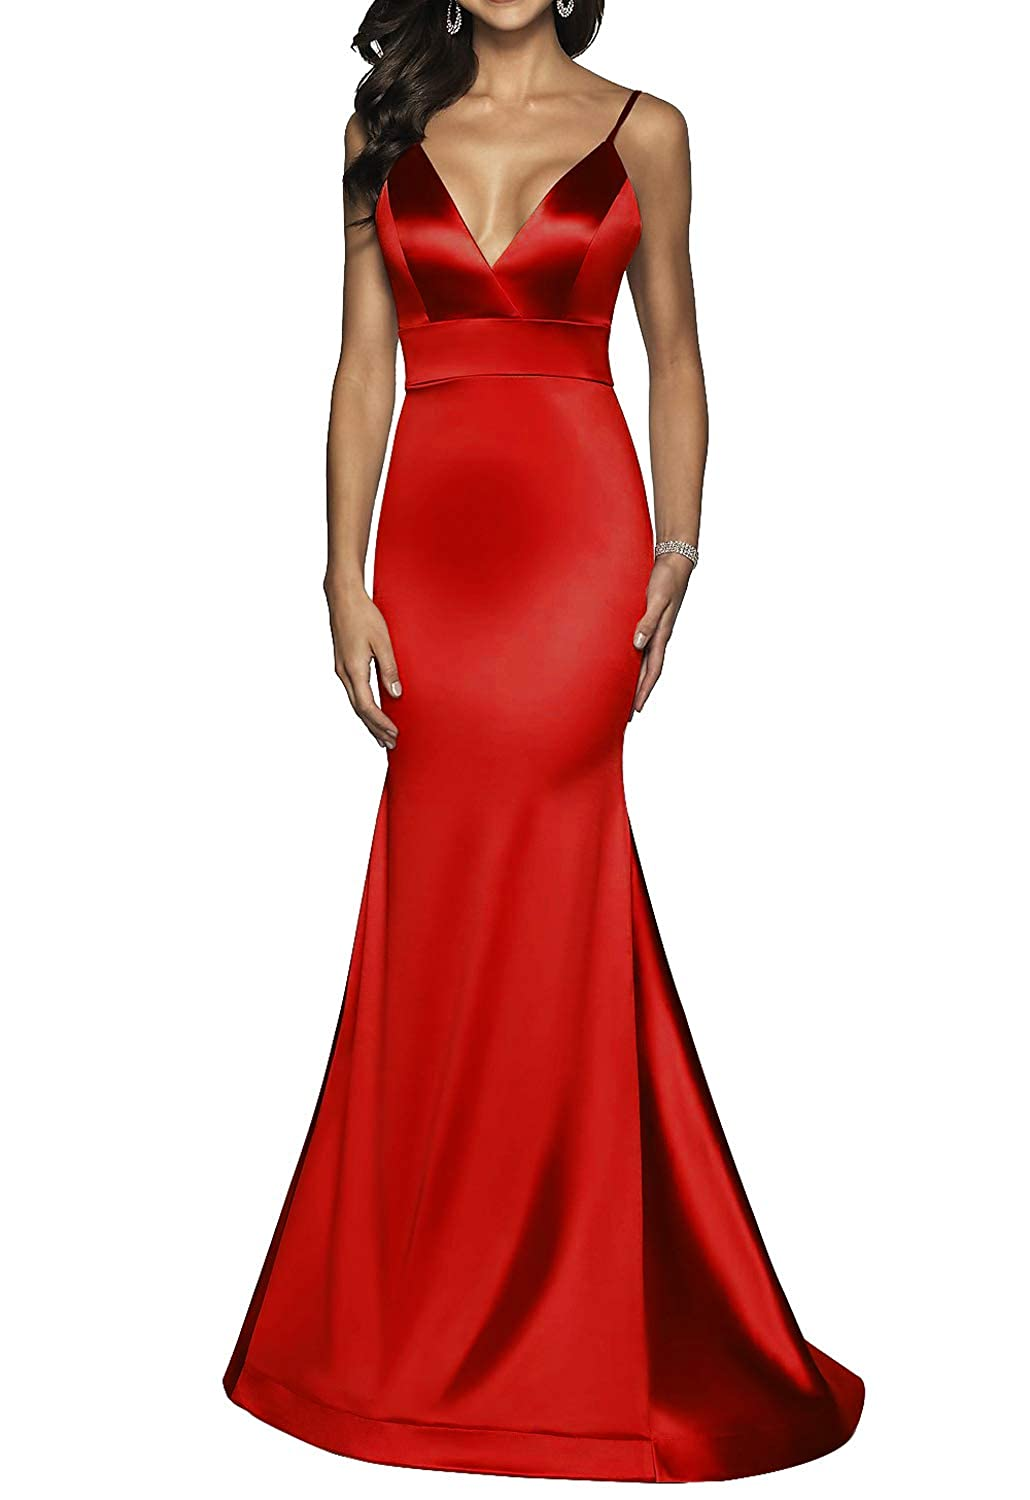 Red Long VNeck Formal Prom Dress for Women with Trumpet Spaghetti Straps Skirt